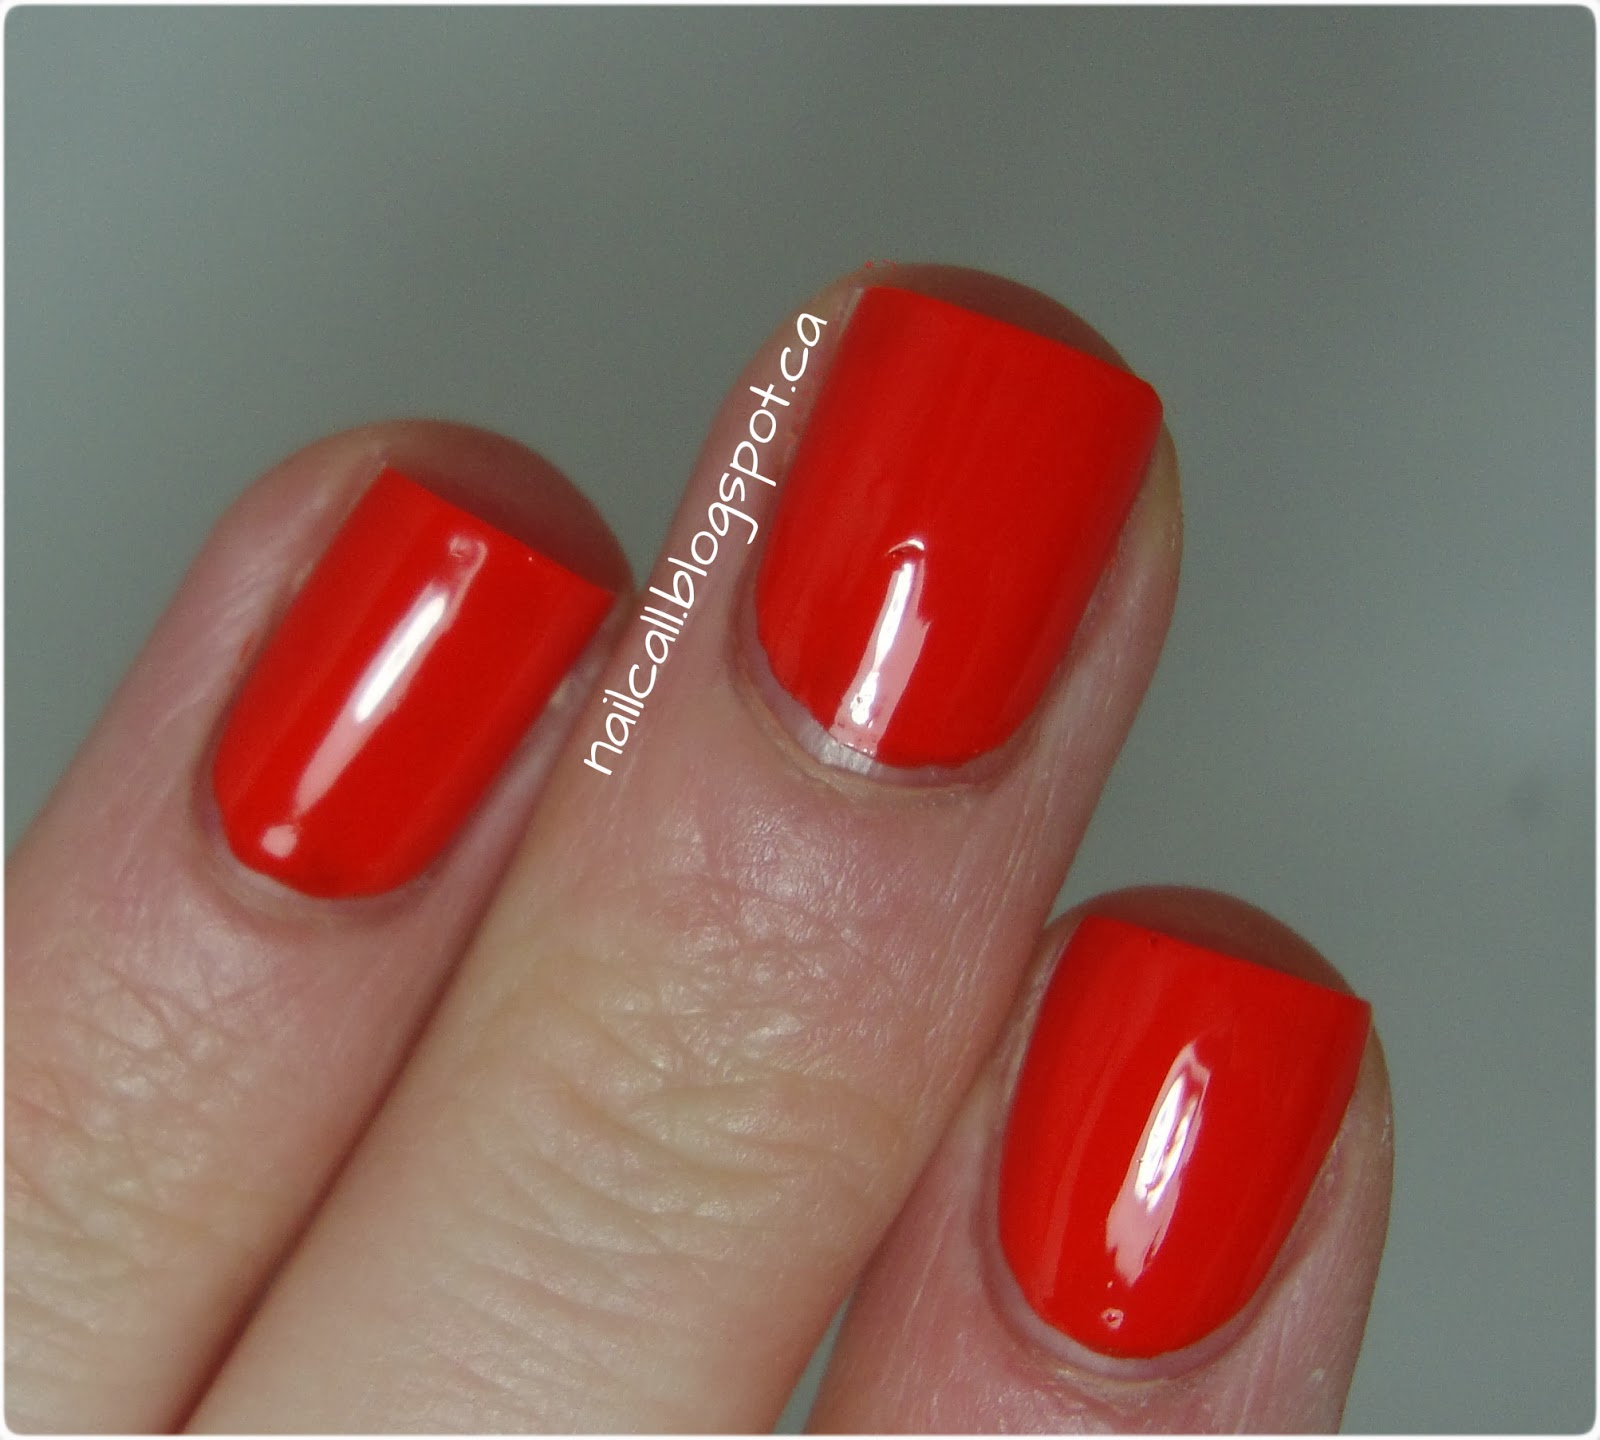 OPI The Drummer is Hot swatch 2